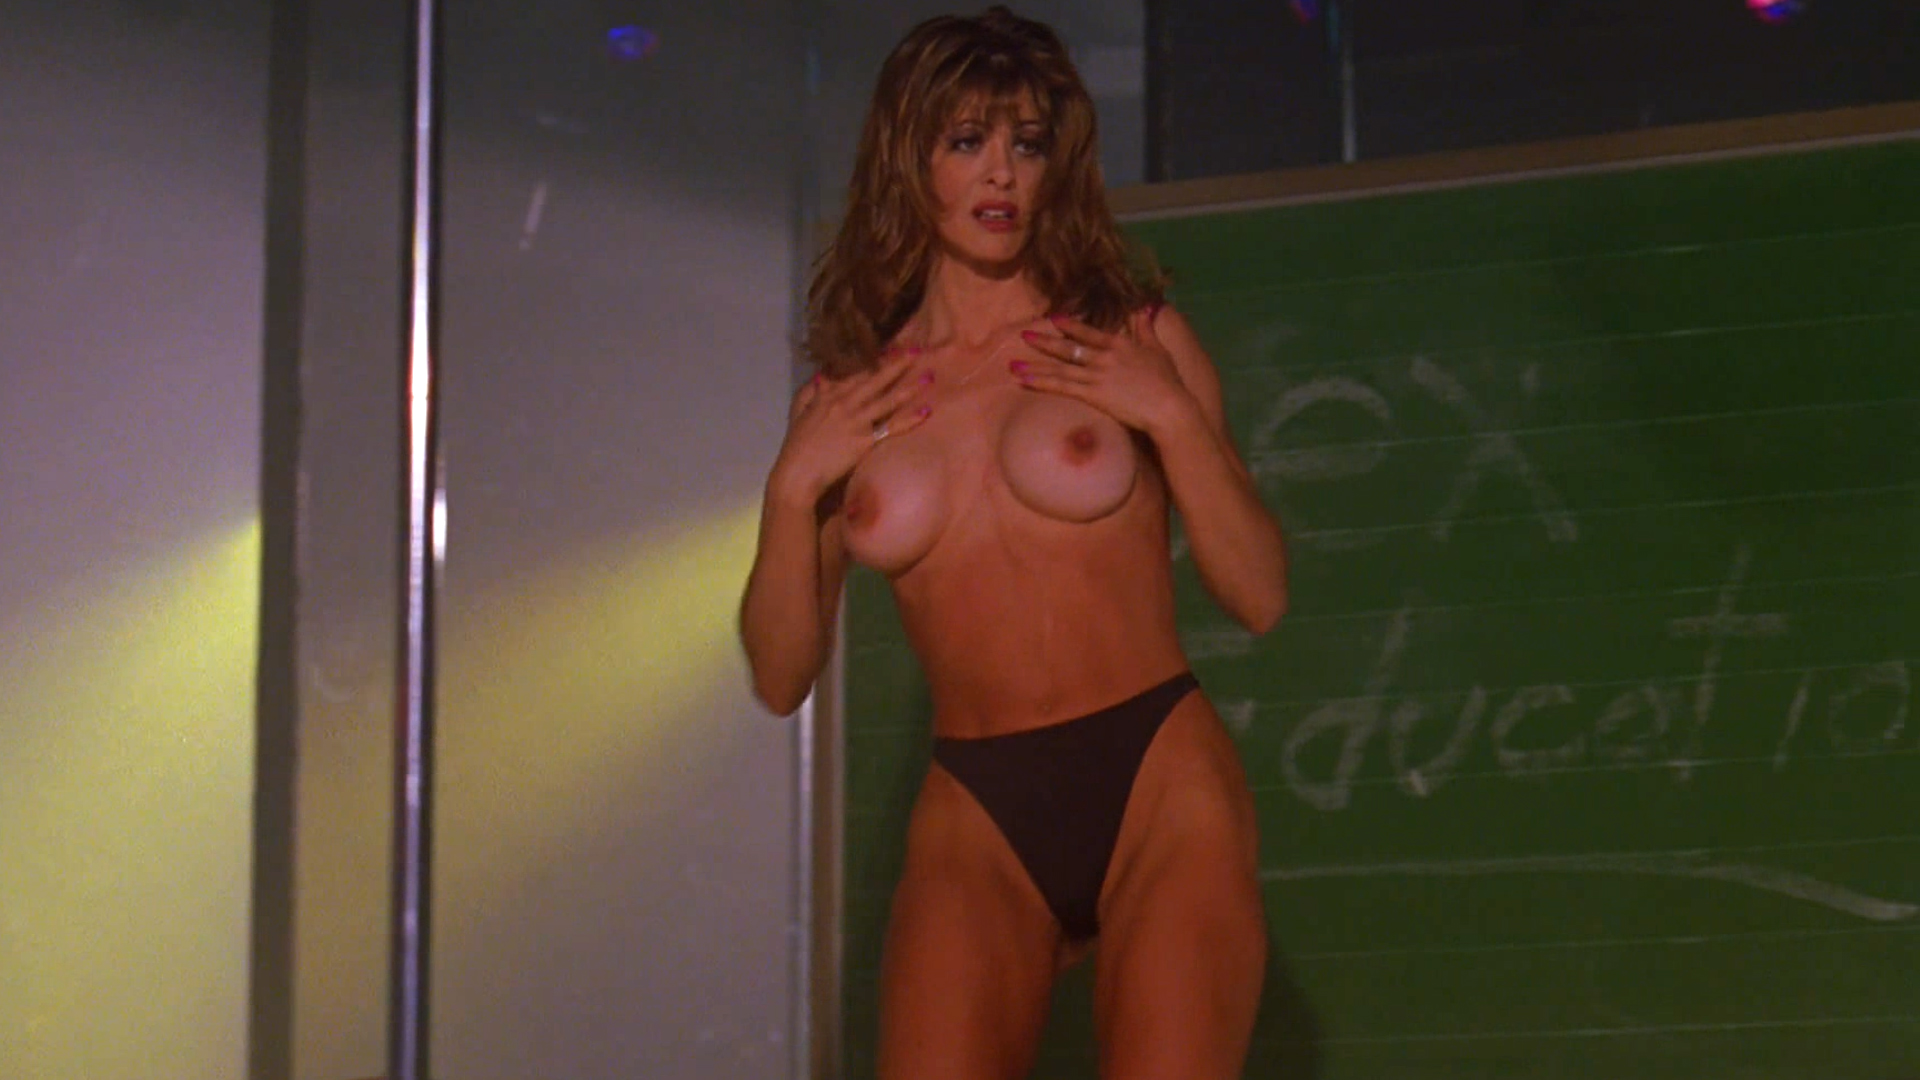 Sexy Excellent gallery nude pics from varsity blues